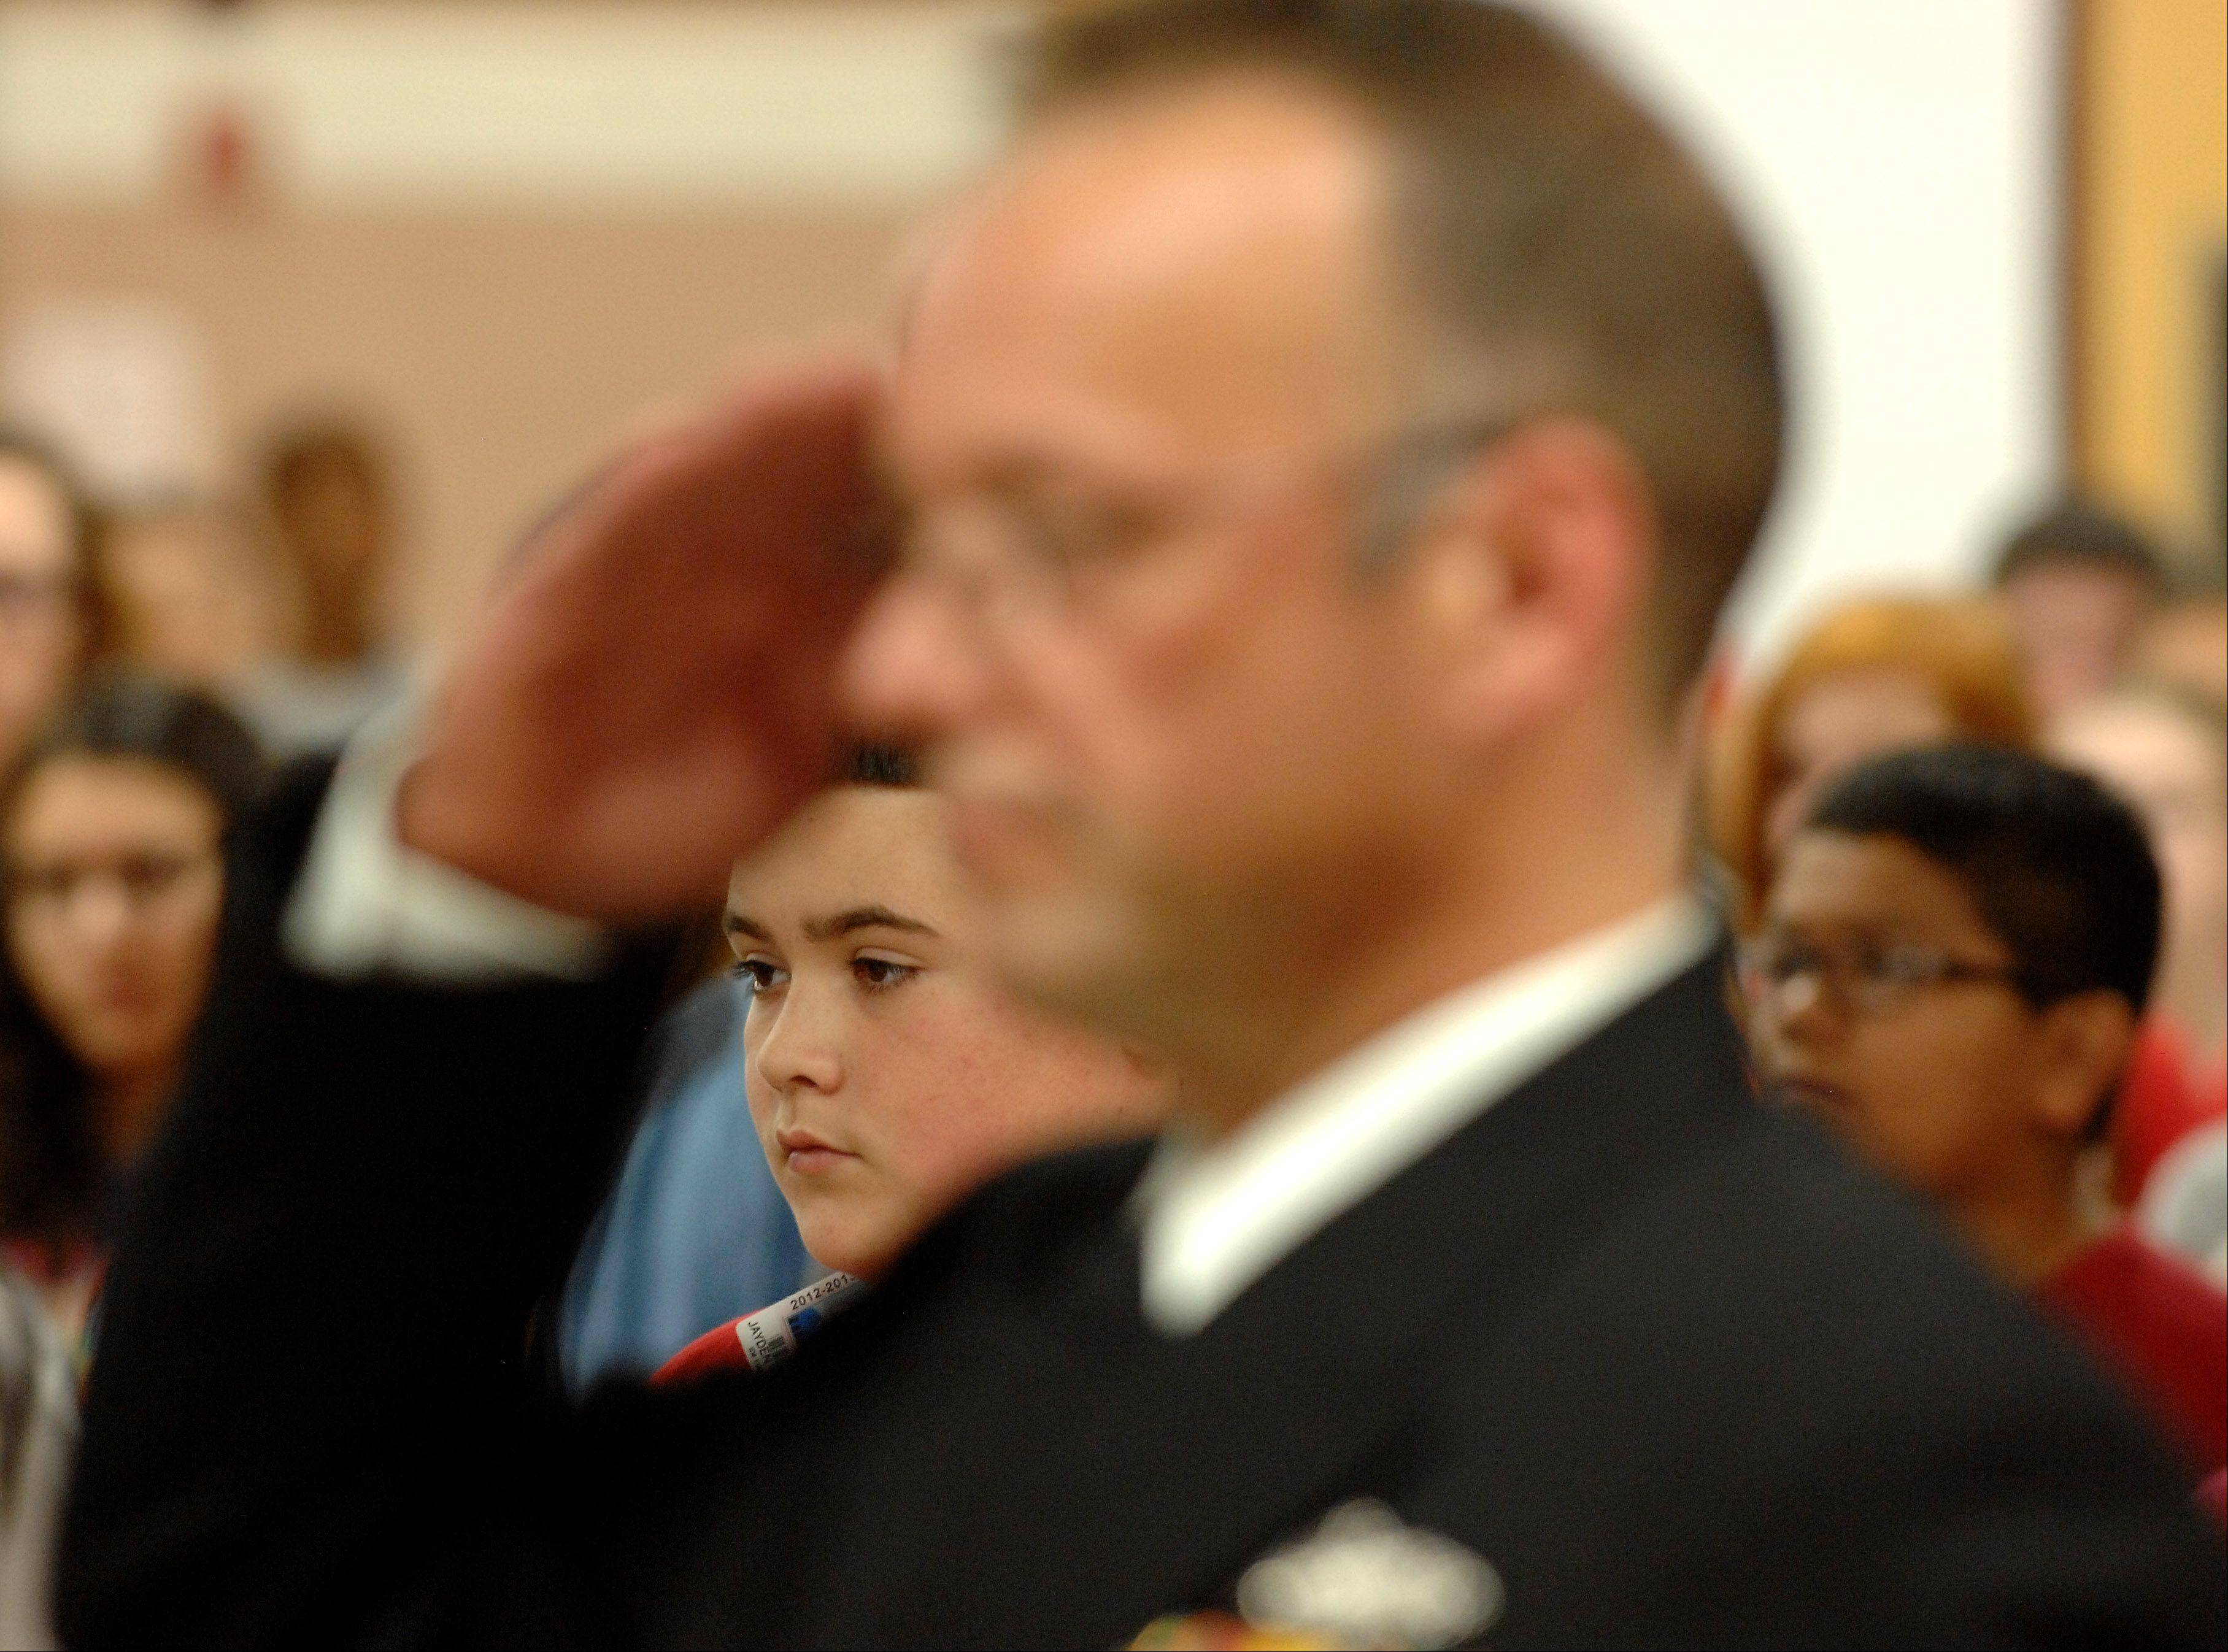 Seventh-grader Jayden Vento is framed by the salute of retired Navy Chief Petty Officer Dan Coakley as the national anthem plays during Jewel Middle School's seventh annual Veterans Day assembly Wednesday at the school in North Aurora.